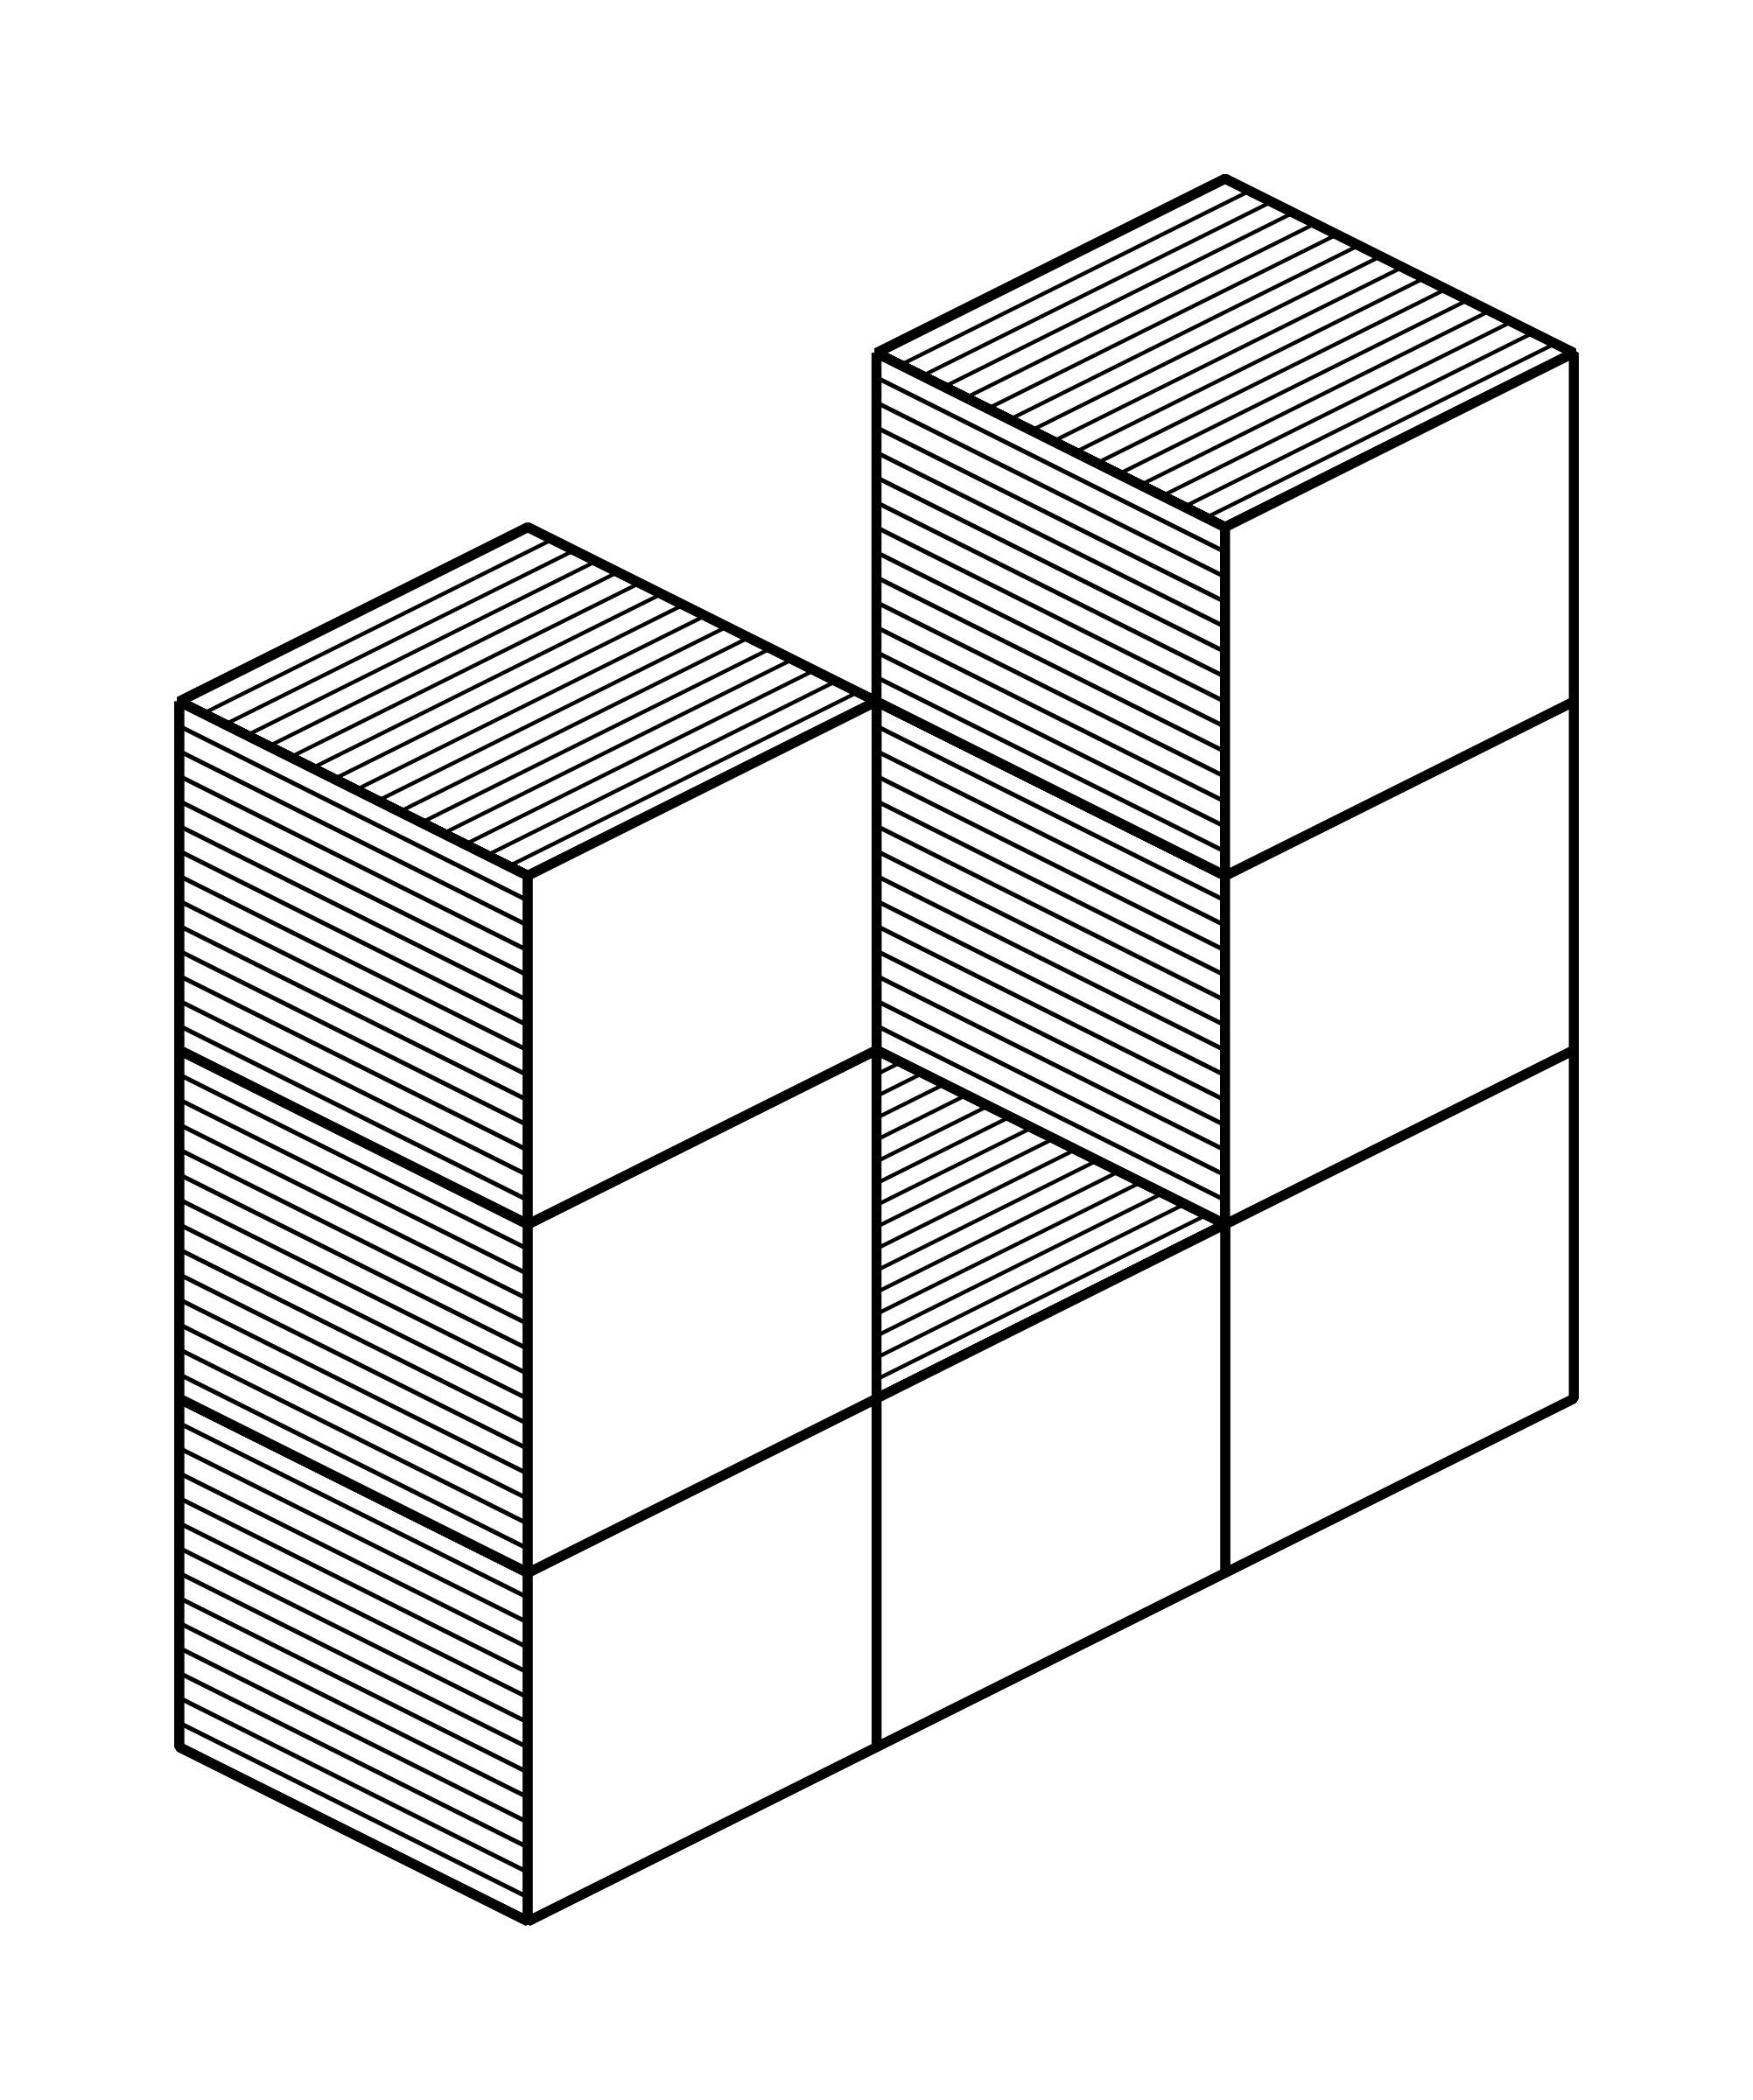 isometric drawing task 09 by frankes